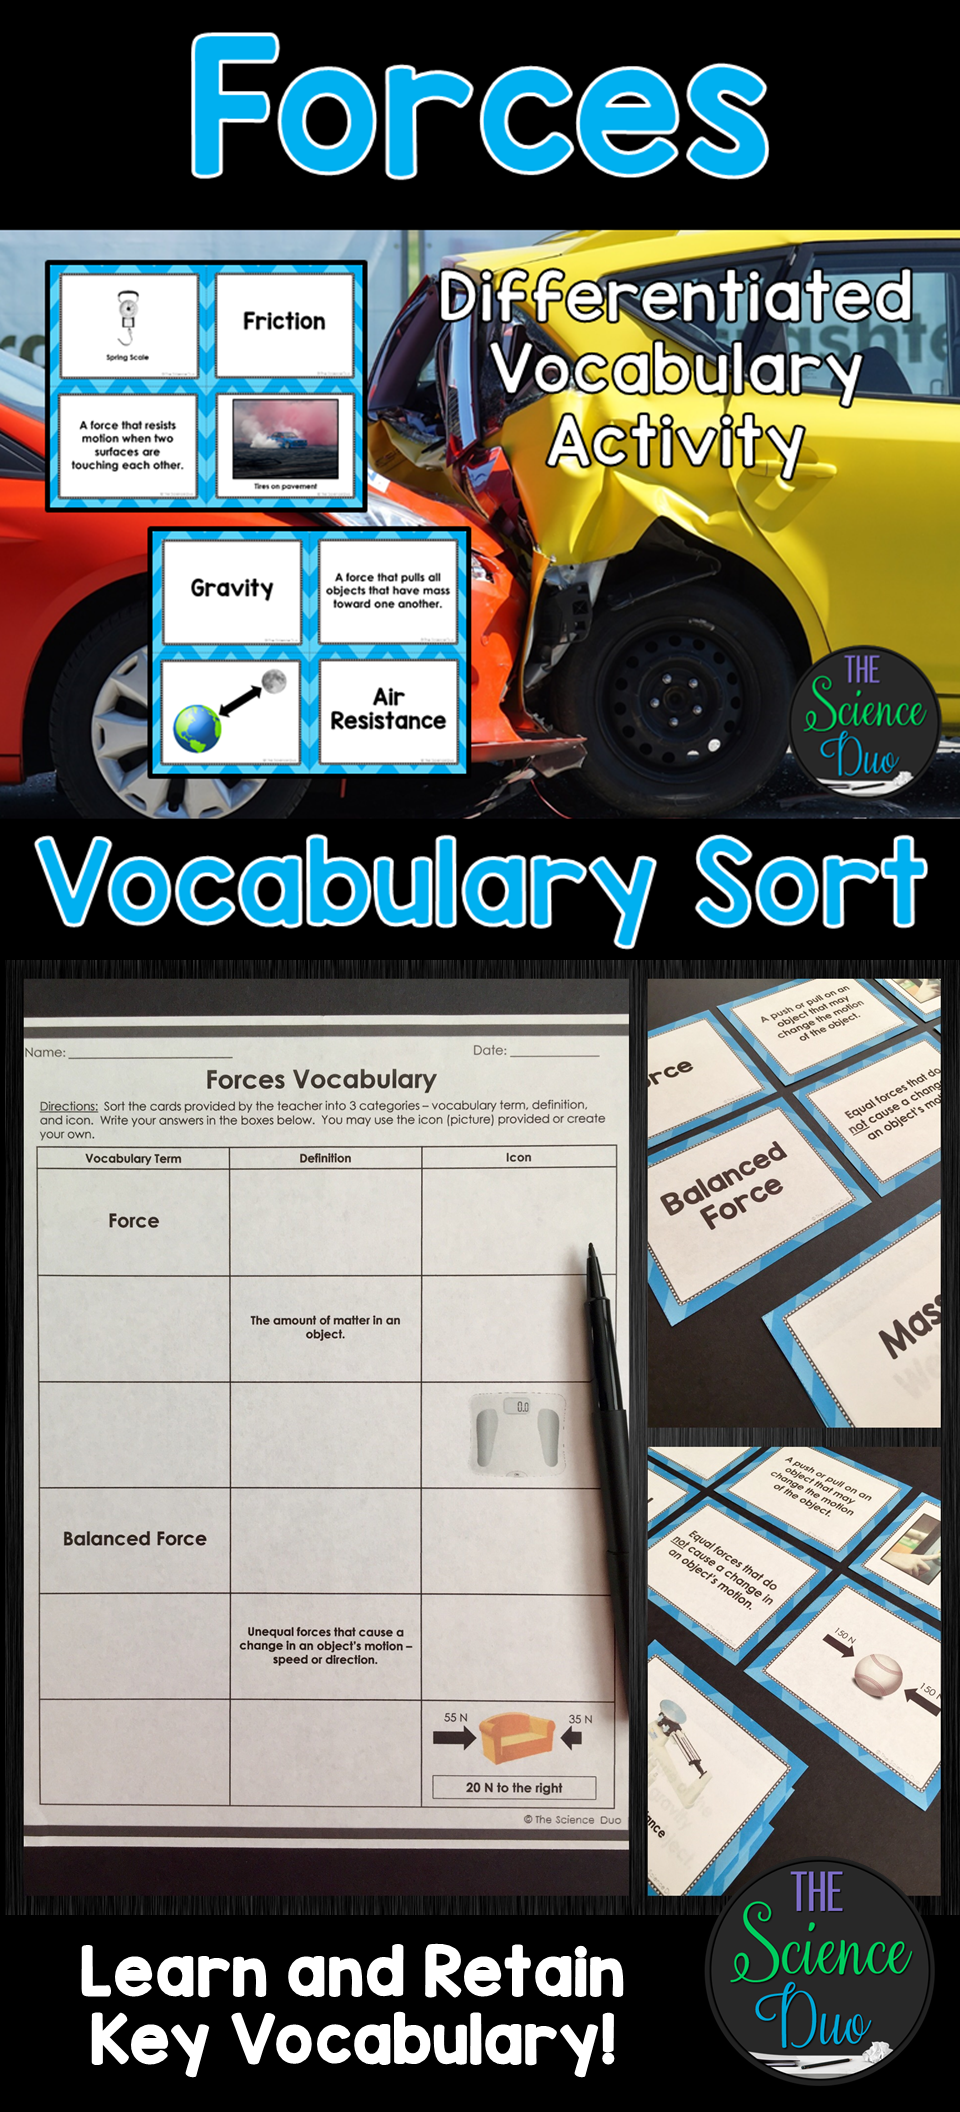 Forces Vocabulary Sort The Science Duo Products Vocabulary